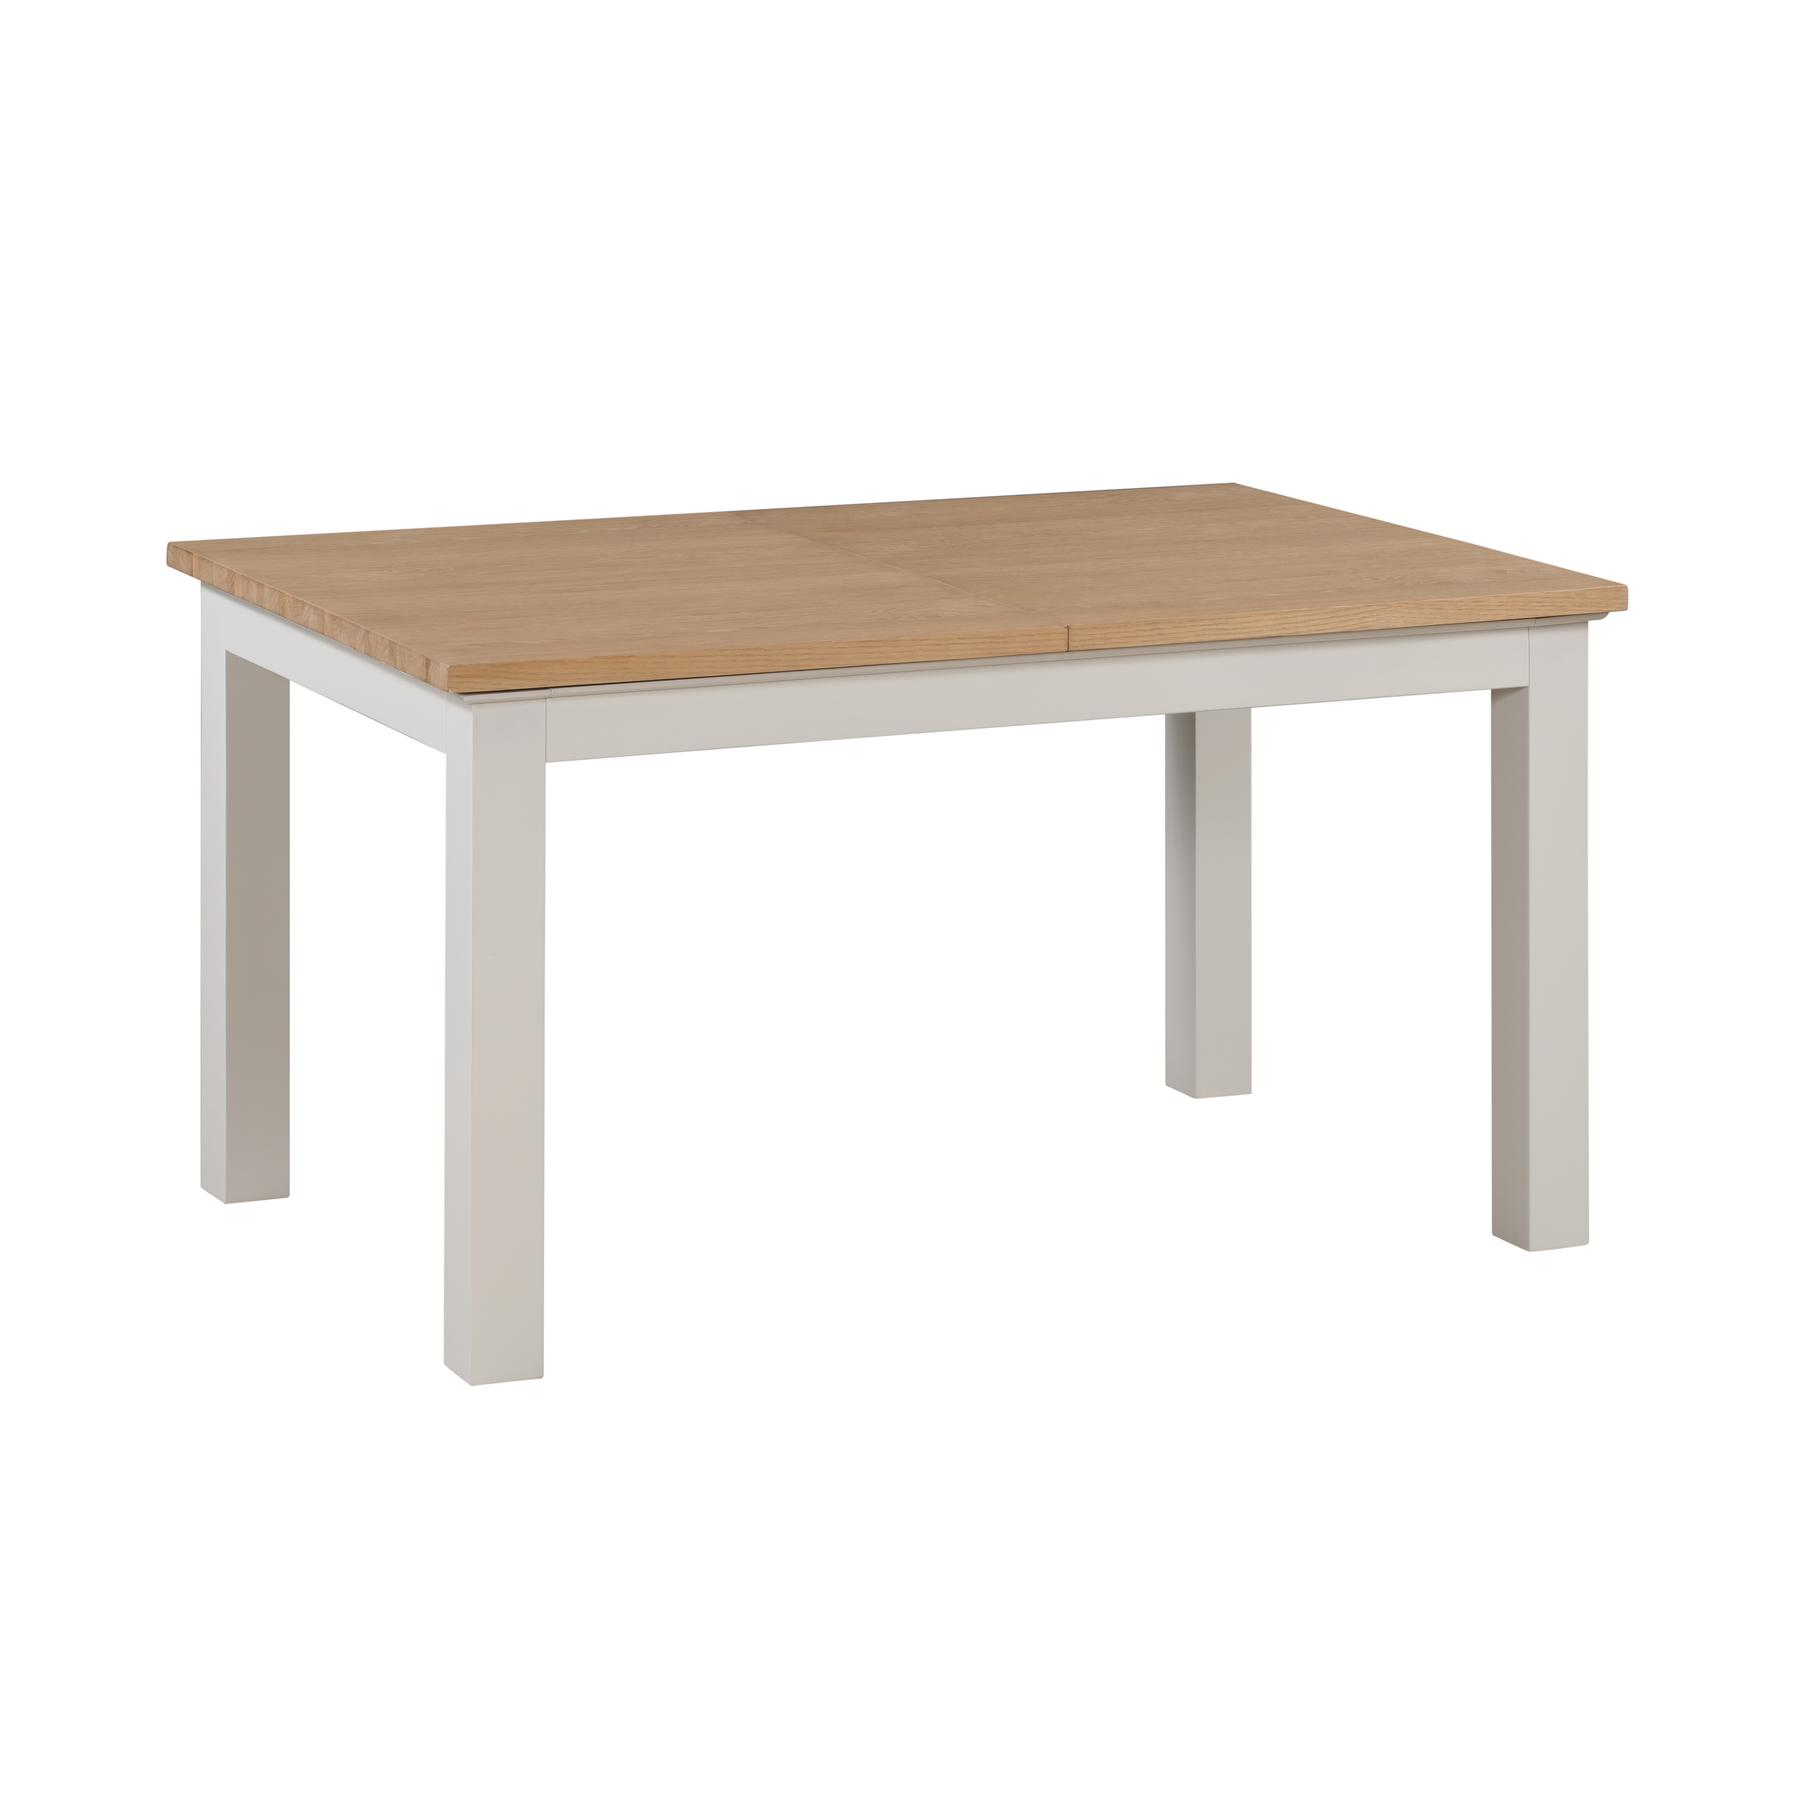 Ripley Oak Collection Extending Dining Table